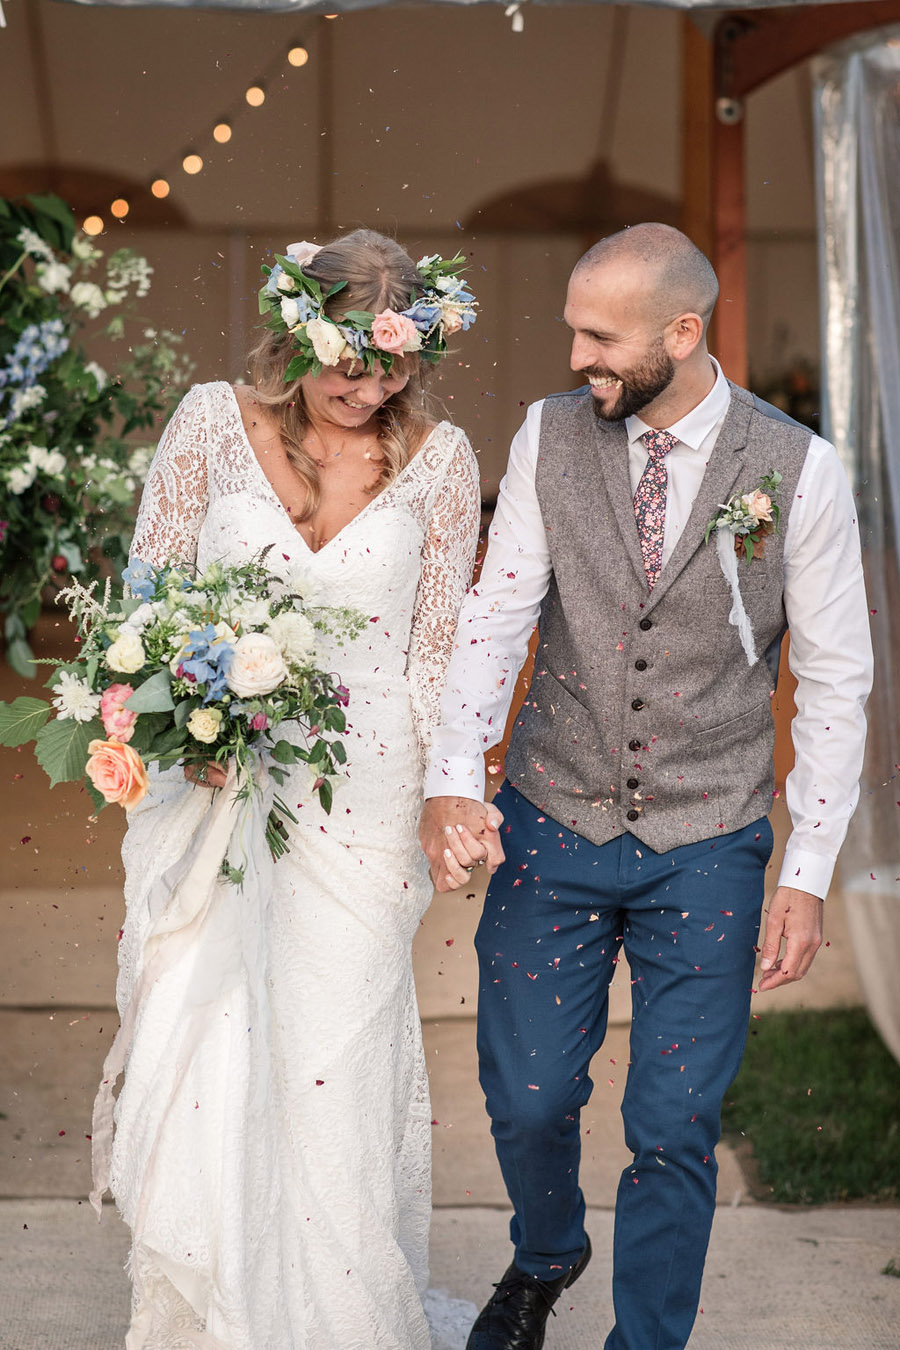 Evening sunset wedding inspiration at Willow Grange Farm, with Becky Harley Photography (43)